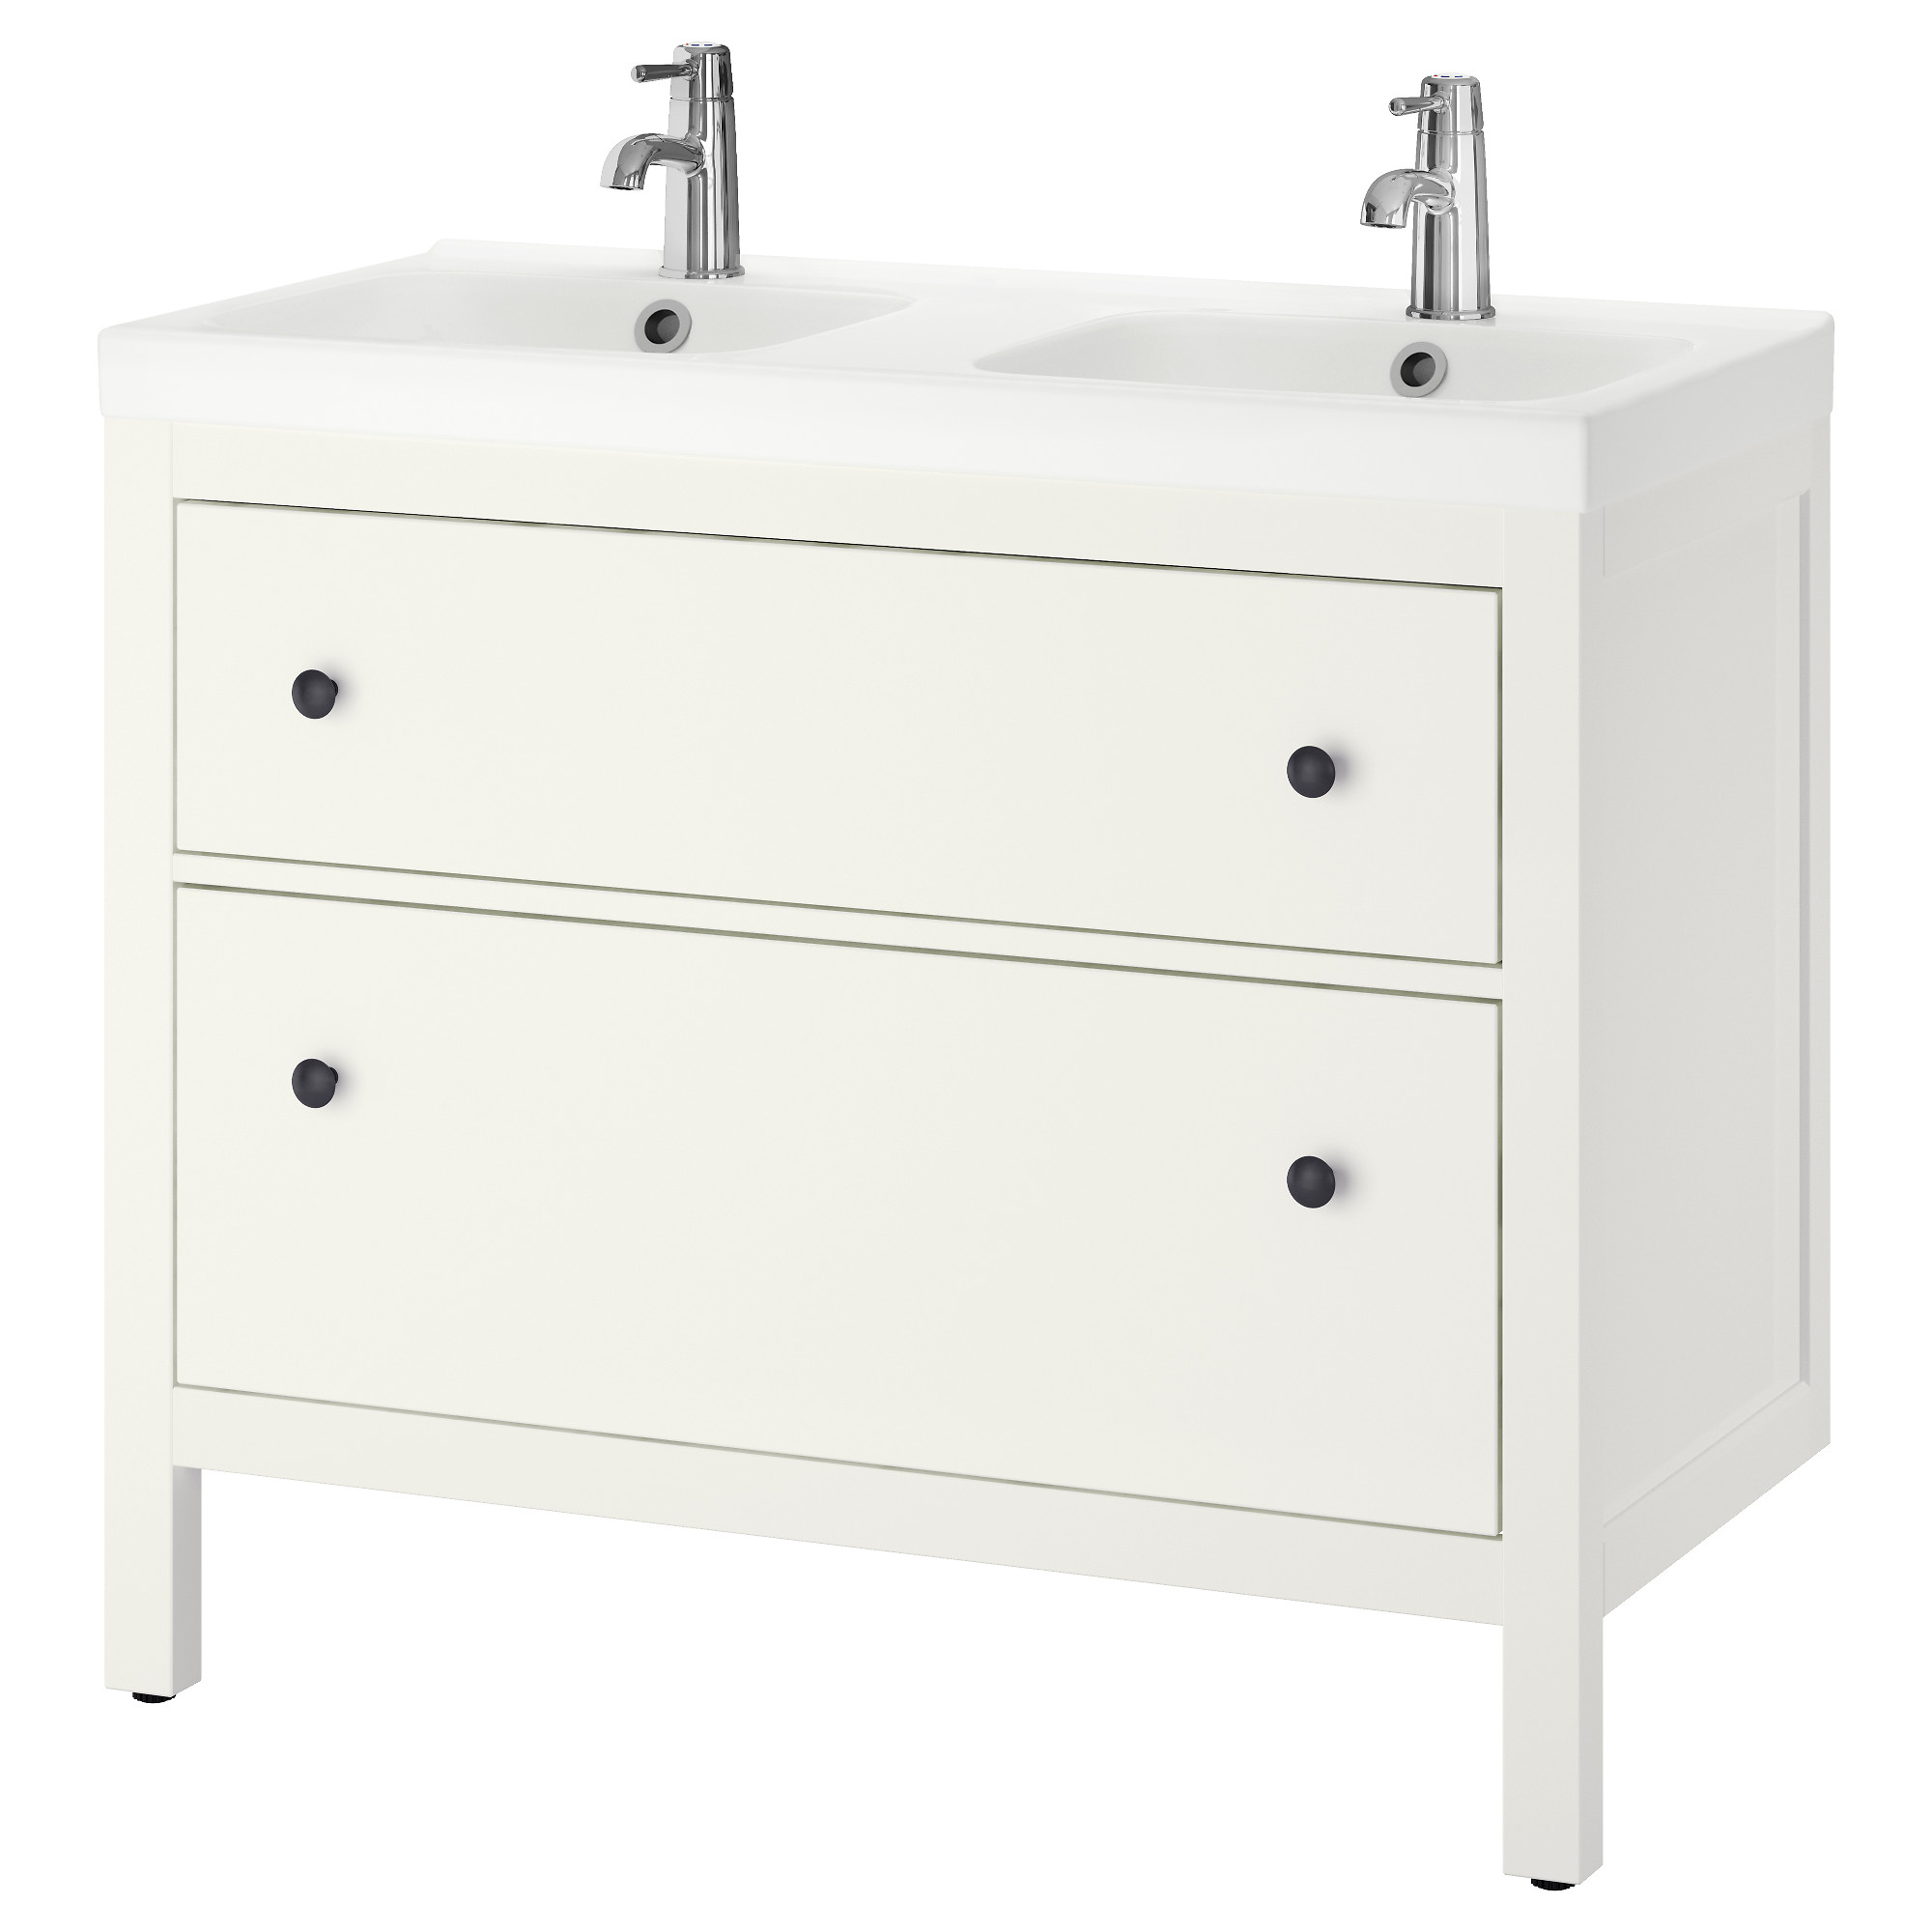 Bathroom sink cabinets white - Hemnes Odensvik Sink Cabinet With 2 Drawers White Width 40 1 2